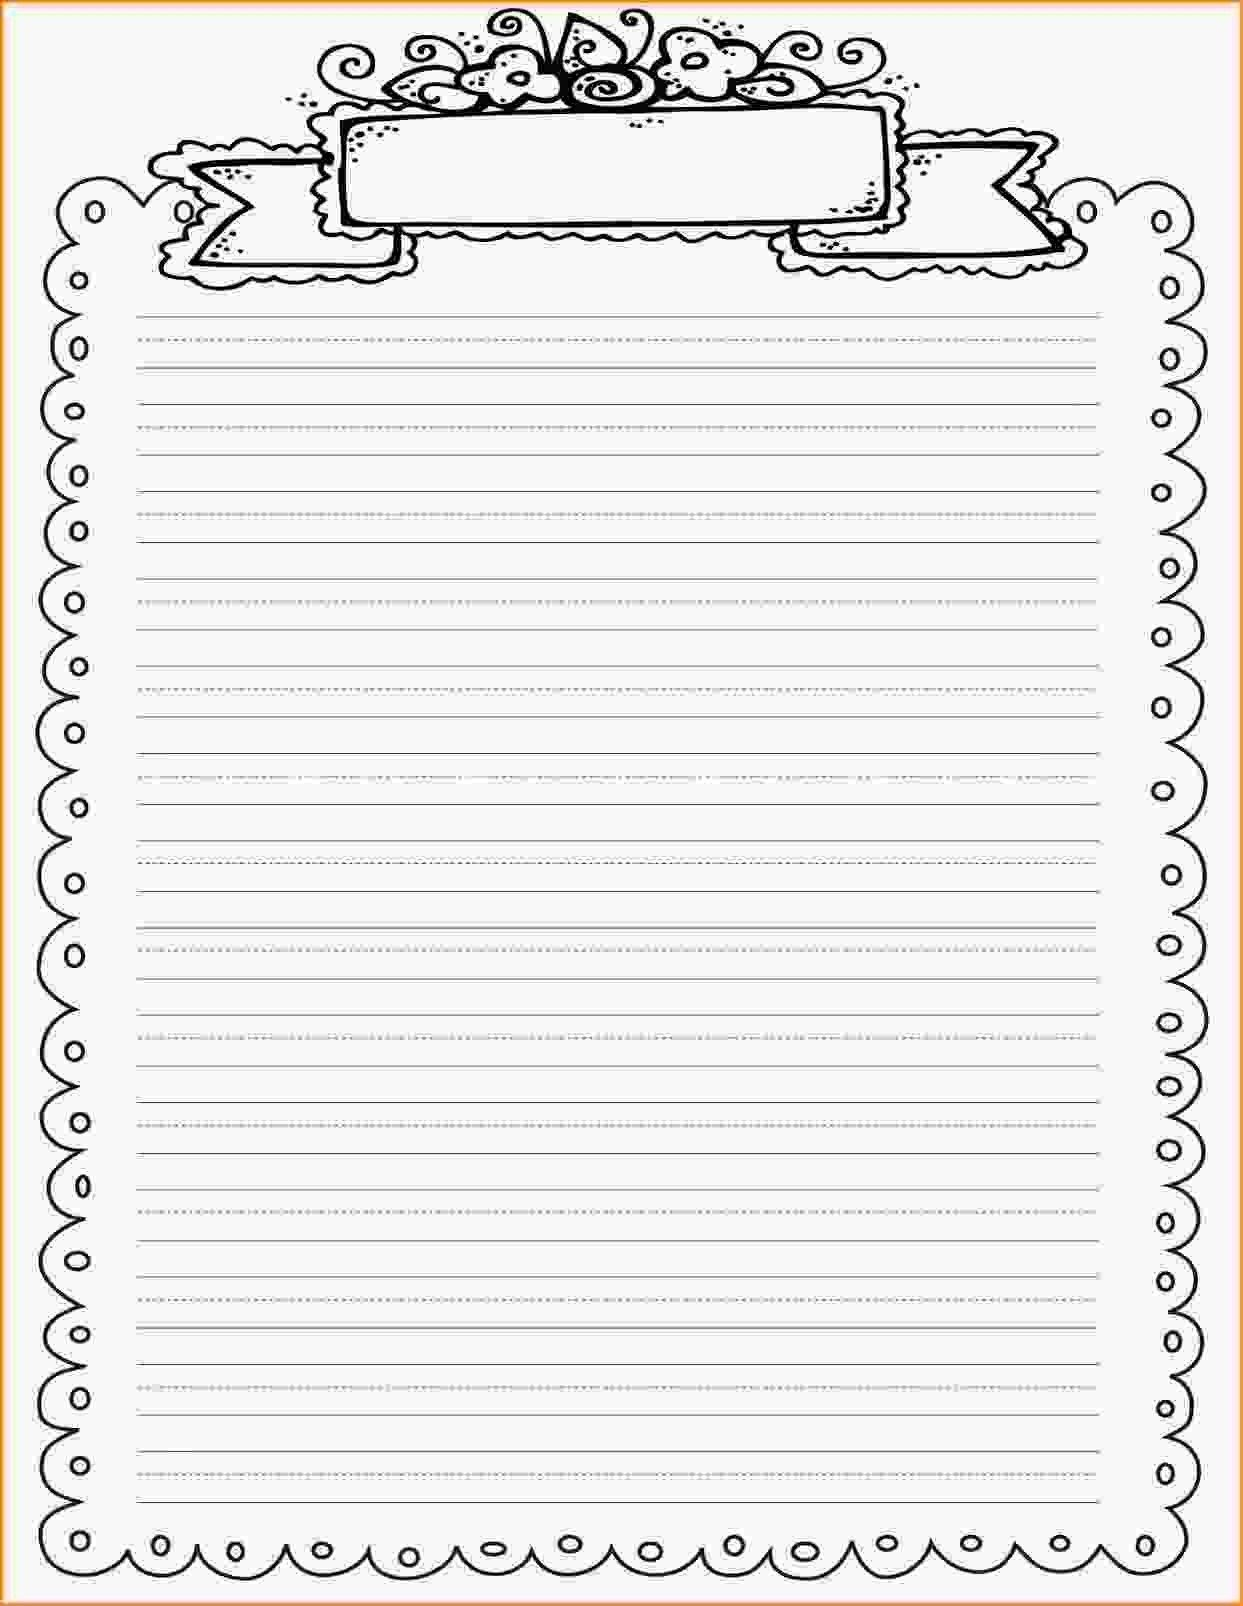 Pinmel Bratz On Art/teaching | Printable Lined Paper, Printable - Free Printable Writing Paper With Borders